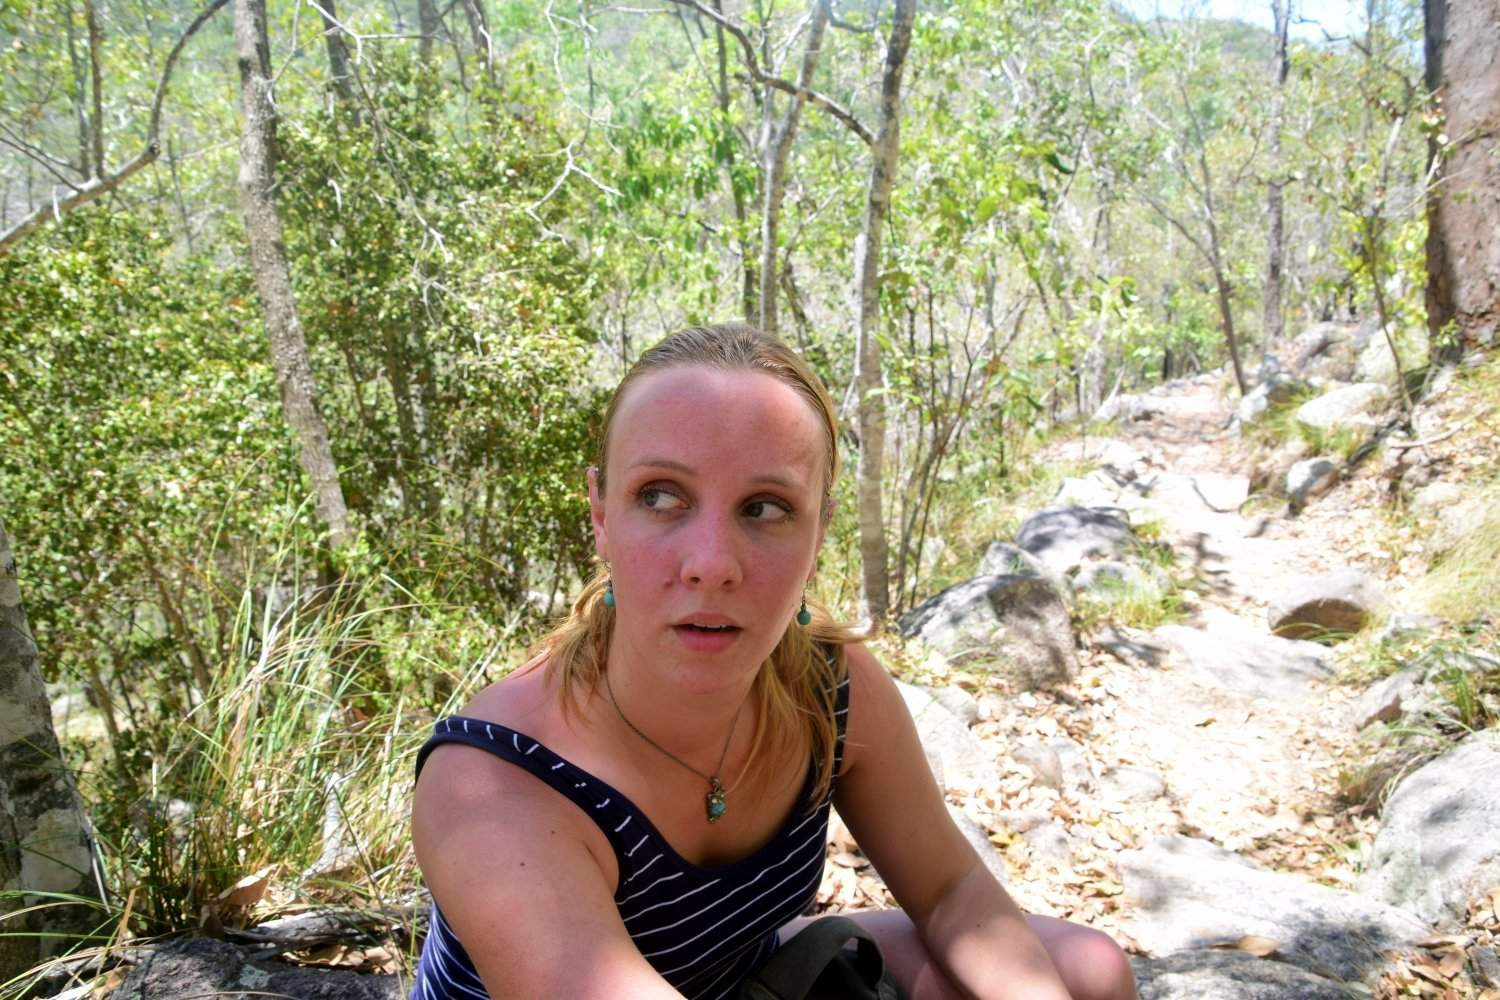 Red-faced and sweaty after hiking in the sunshine.